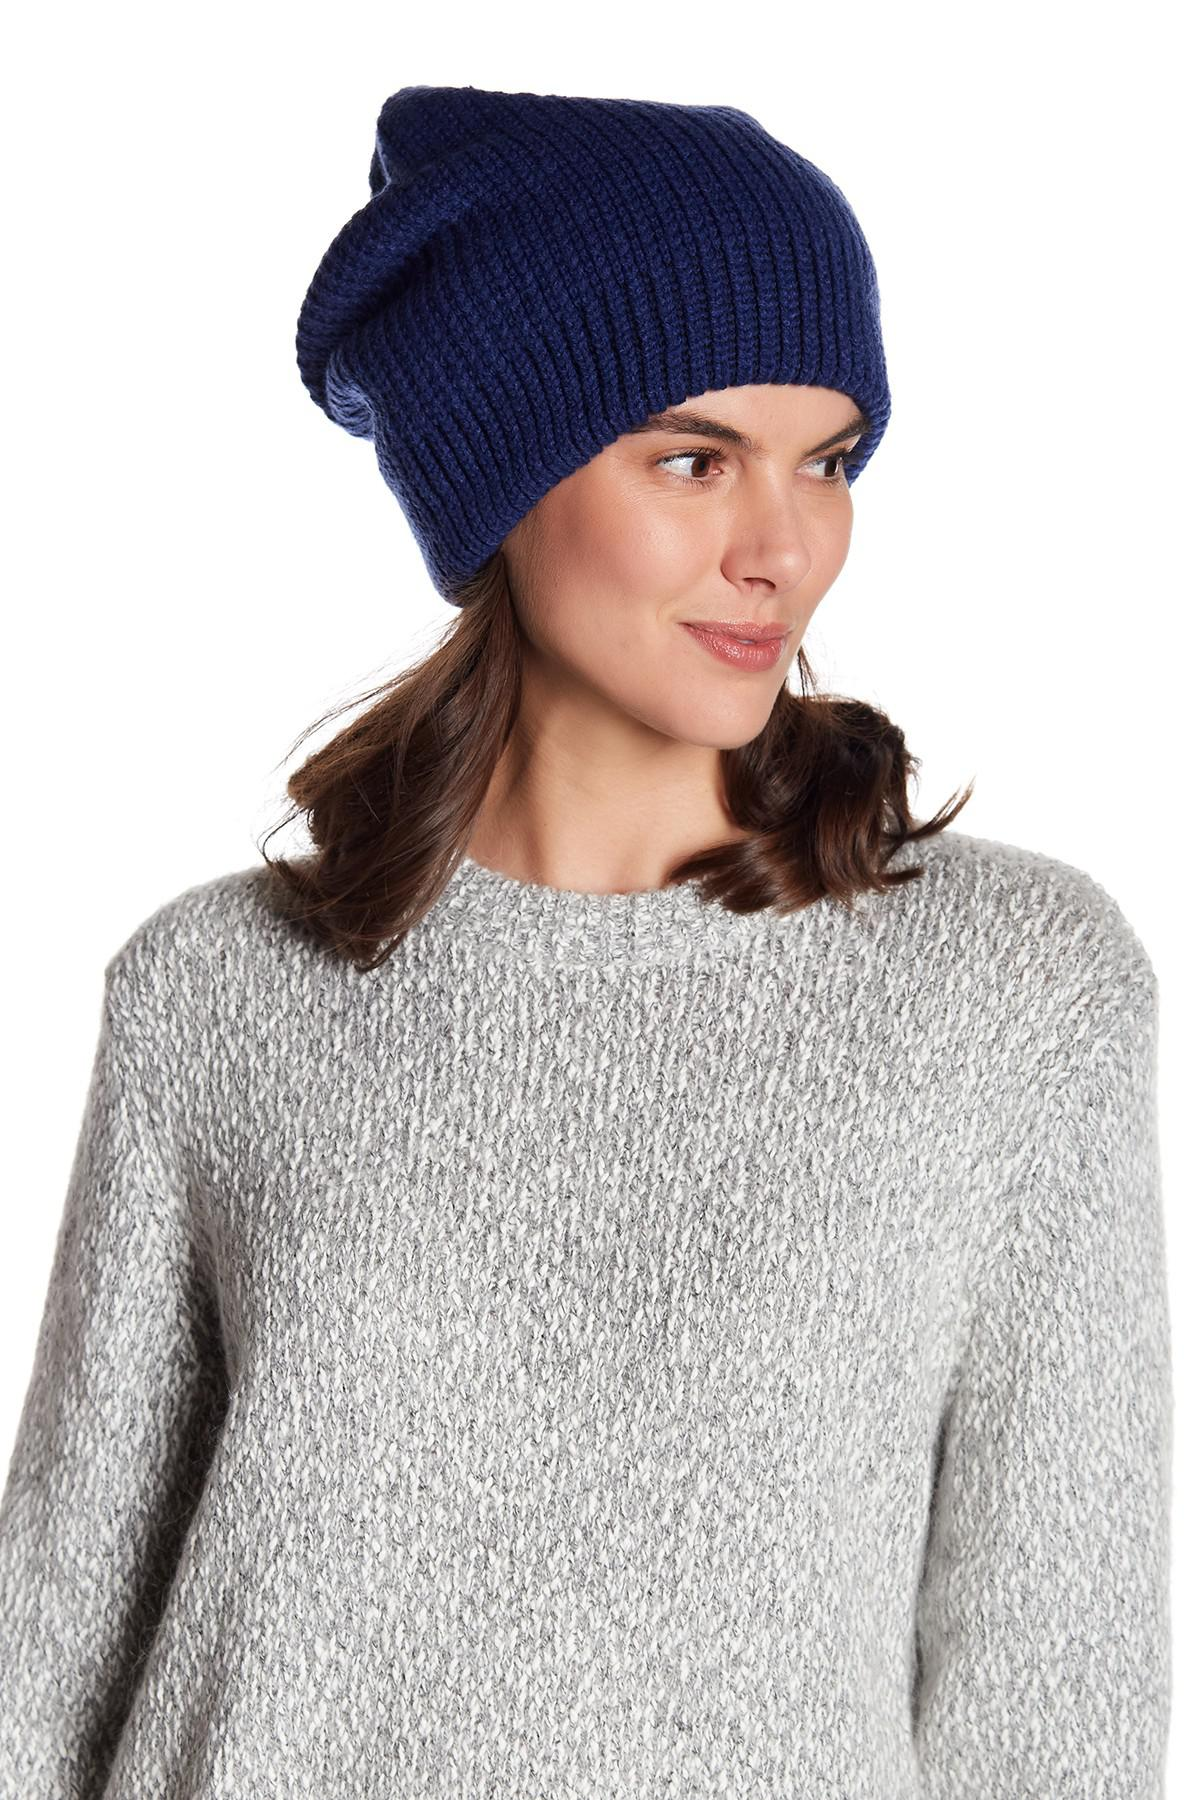 Free People Everyday Slouchy Beanie in Blue - Lyst 843c53cbaf0